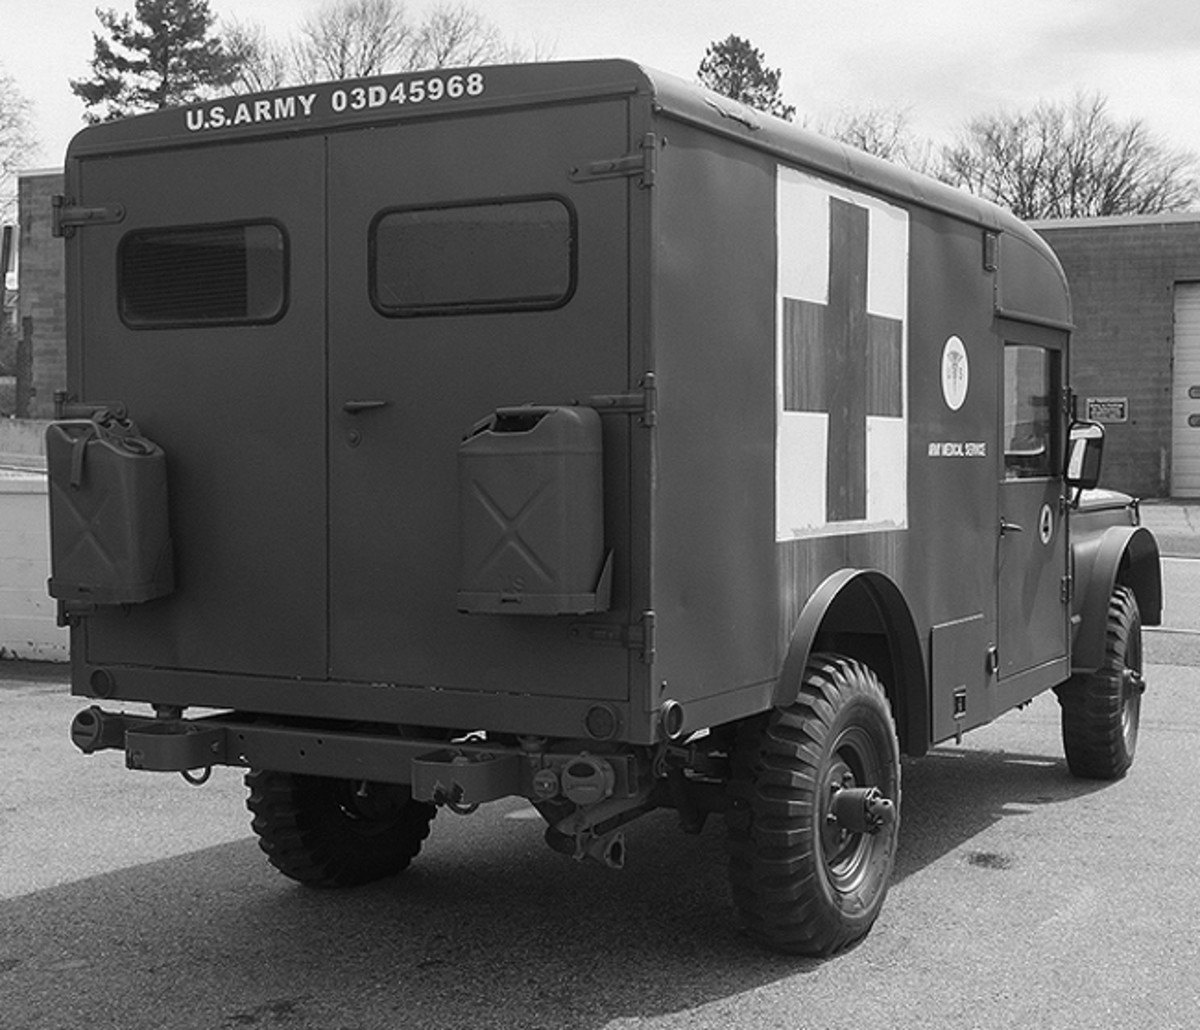 Another of the most widely recognized jeep ambulances is the Kaiser M725, which served during the Vietnam and Cold Wars.